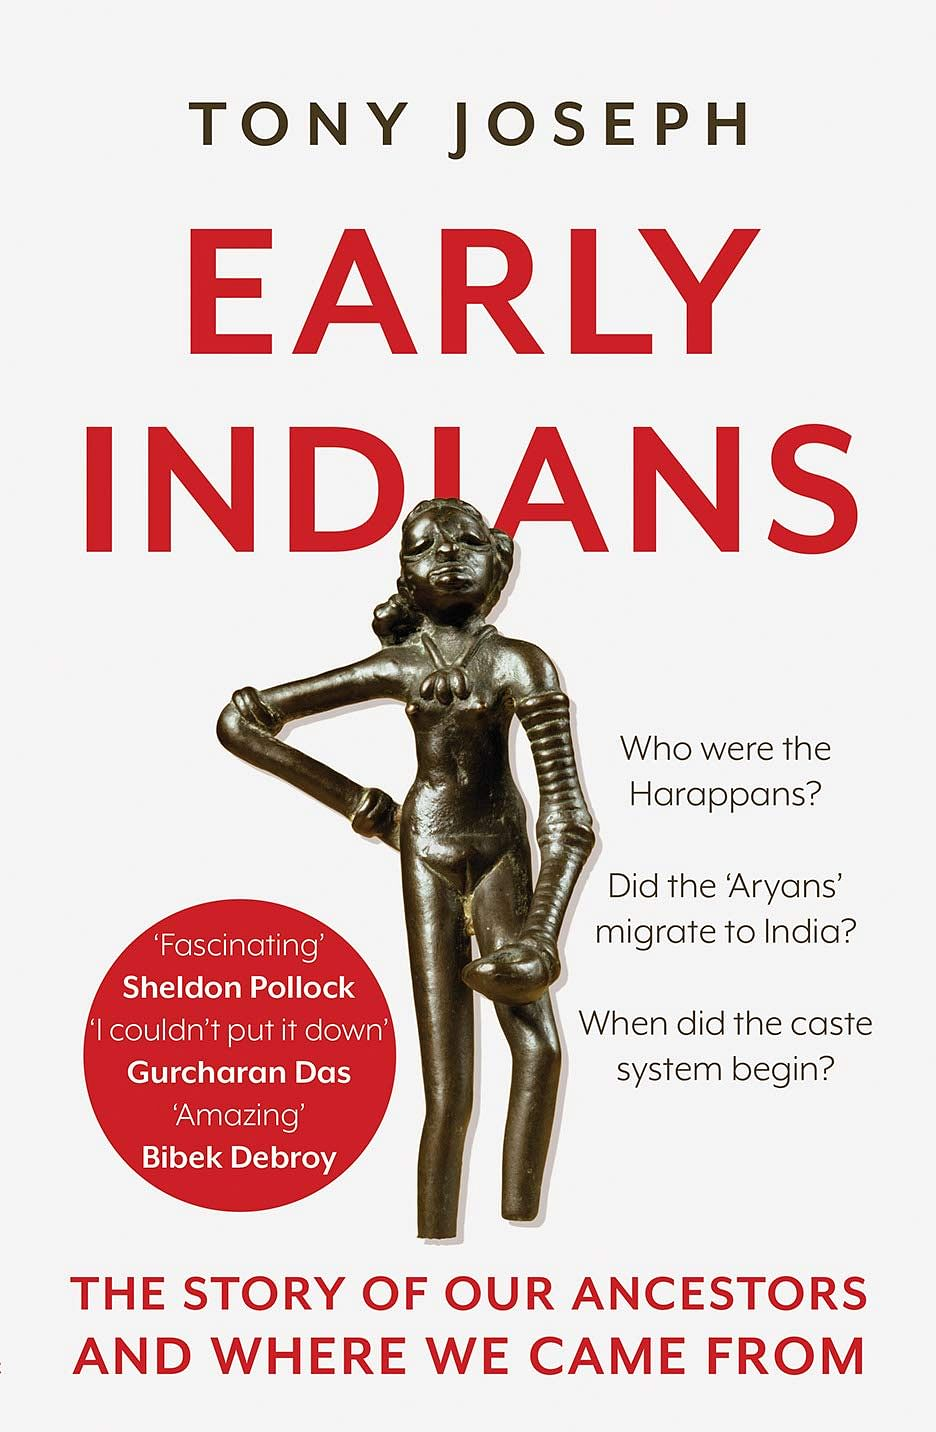 """""""Early Indians: The Story of Our Ancestors and Where We Came From"""" is a book by Tony Joseph which traces the origins of modern humans in India, relying on recent DNA research."""